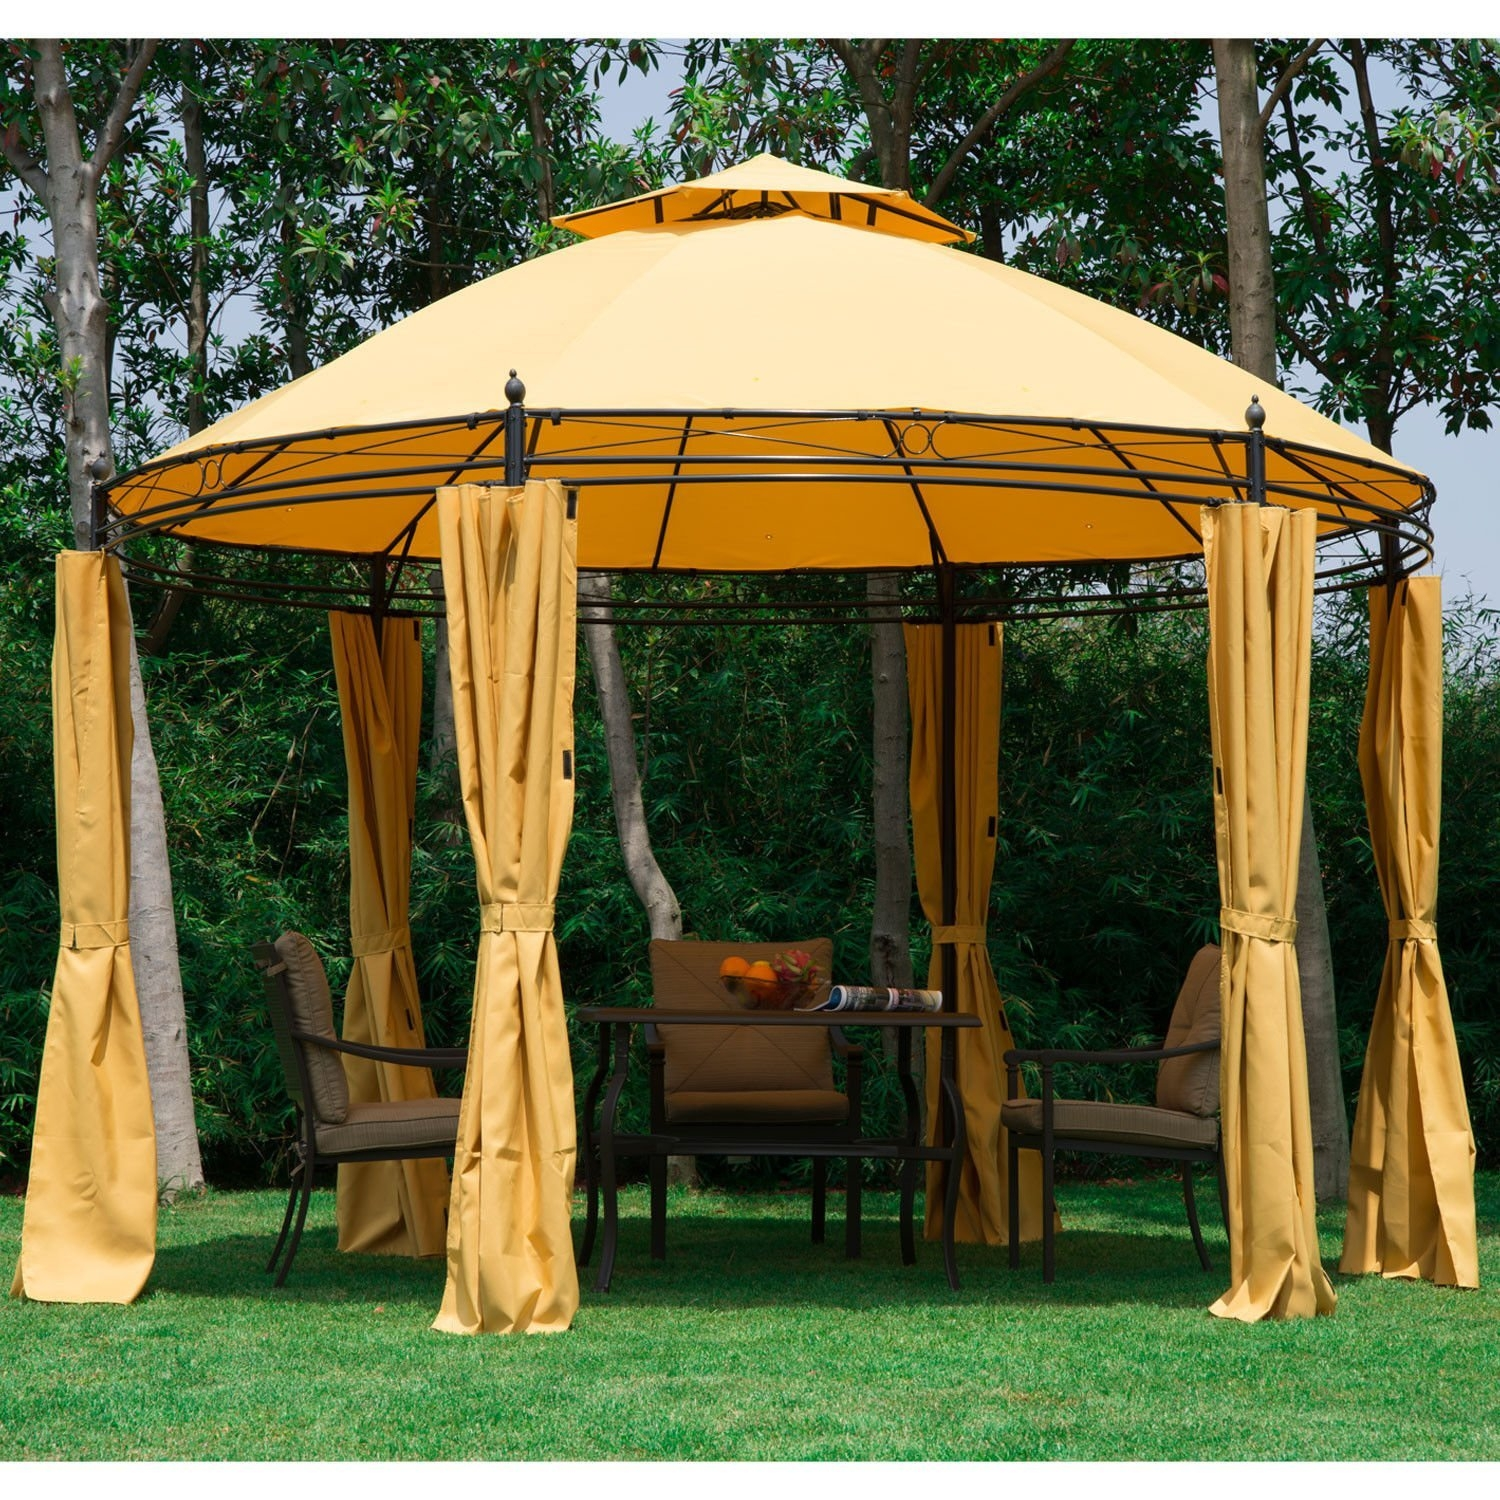 Click here to buy New MTN-G 11.5FT Round Outdoor Patio Canopy Gazebo 2-Tier Roof Tent Shelter w  Curtains by MTN Gearsmith.